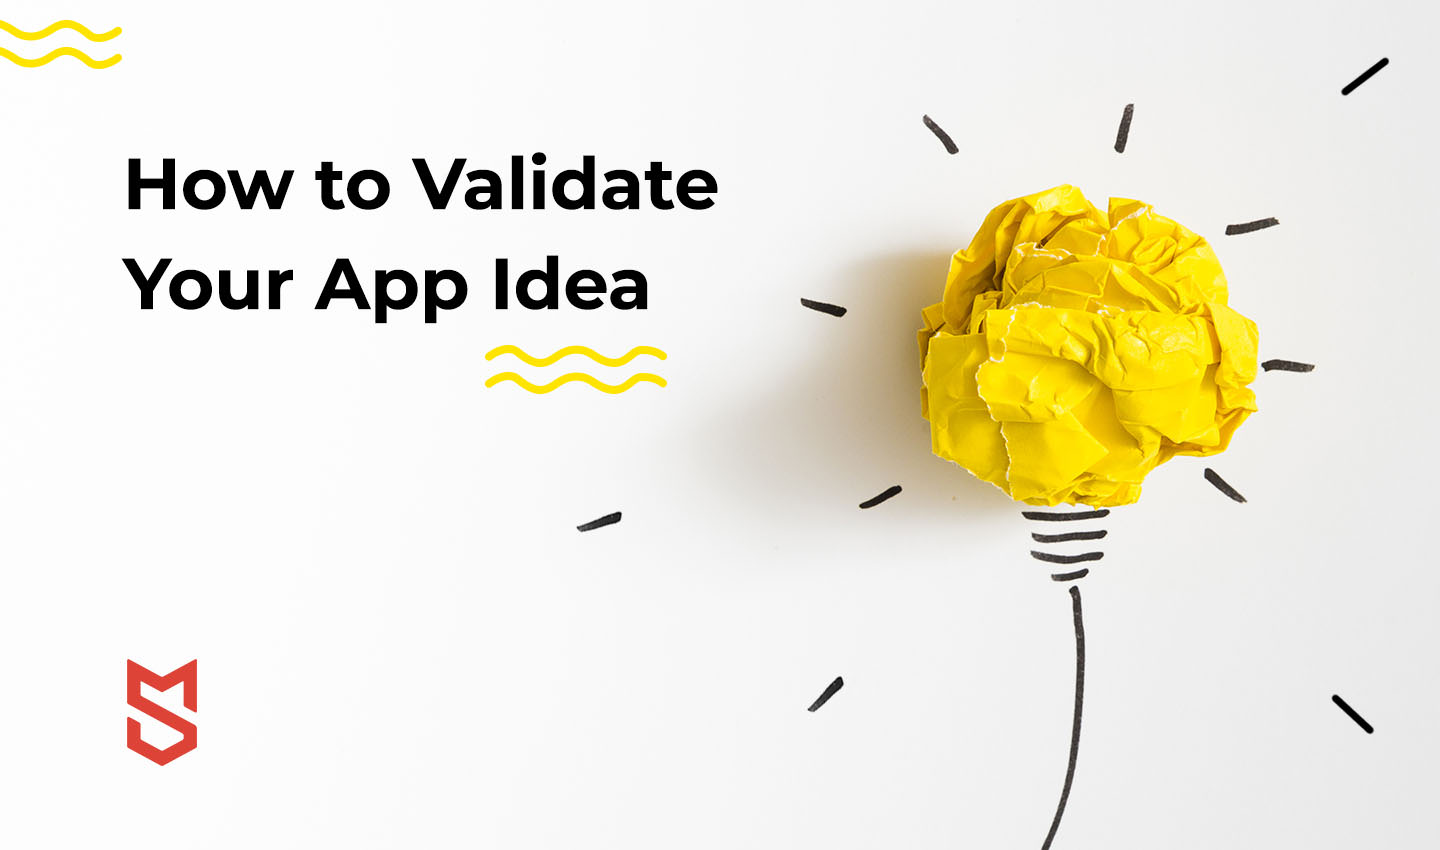 What's the Best Way to Validate your App Idea?